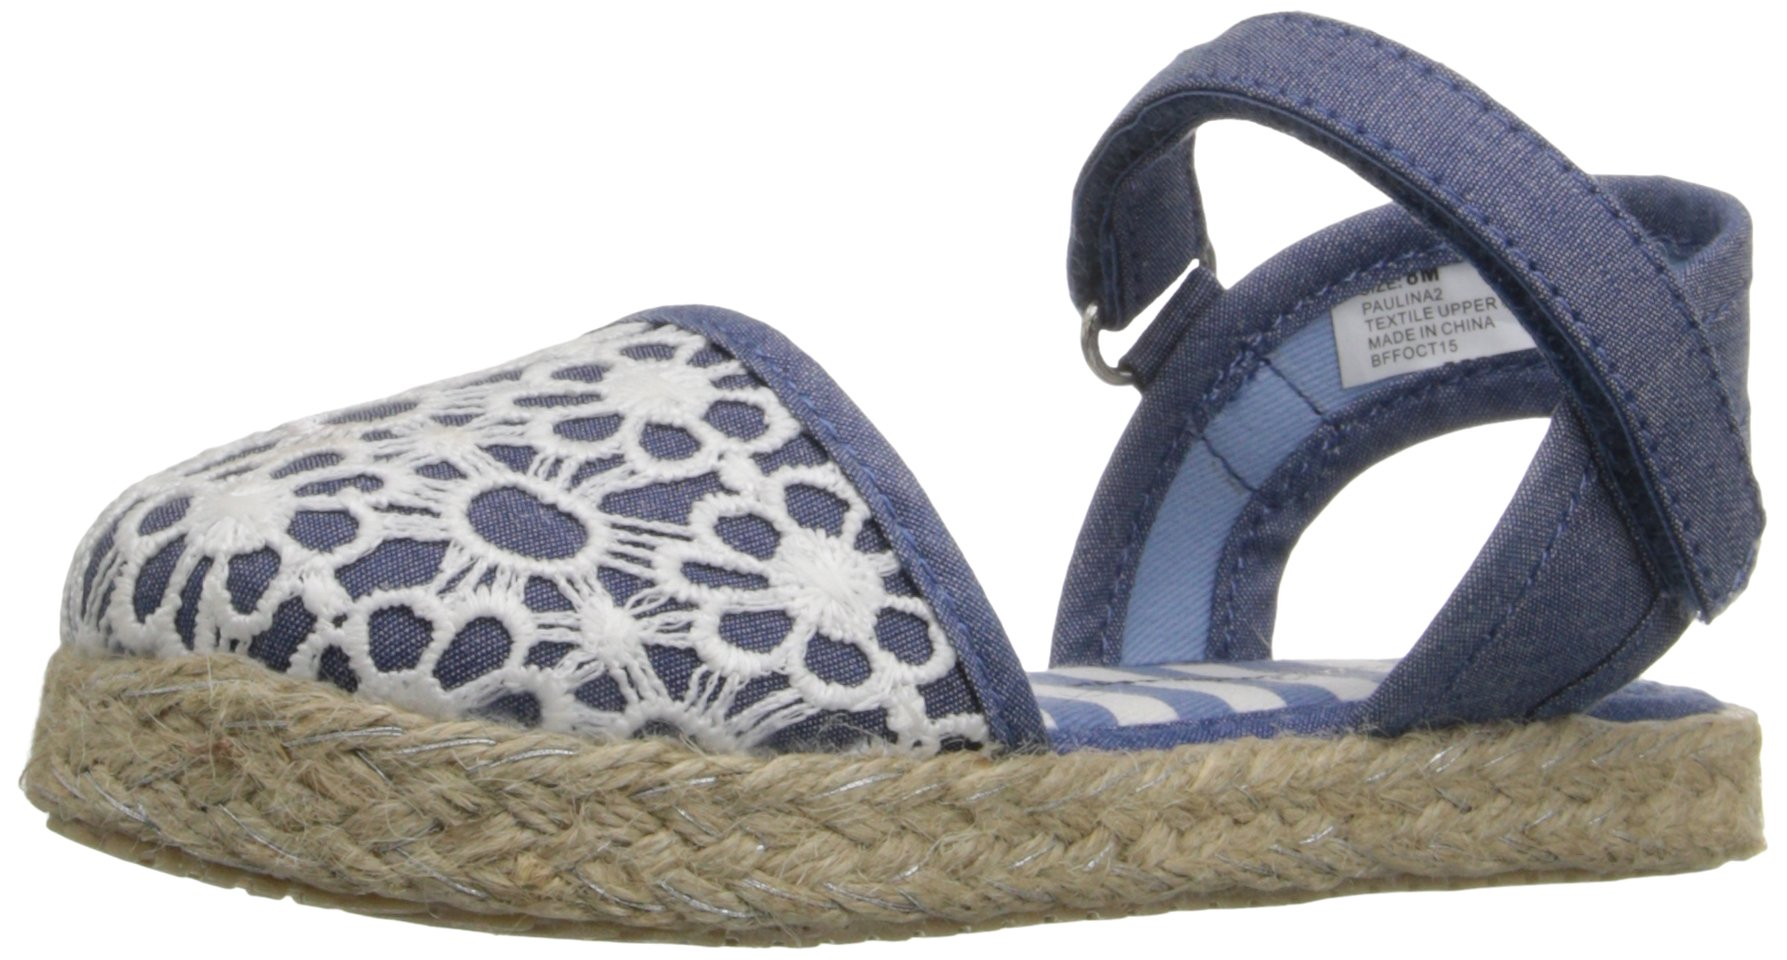 Hanna Andersson Paulina Girl's Espadrille(Toddler/Little Kid/Big Kid), Chambray, 8 M US Toddler